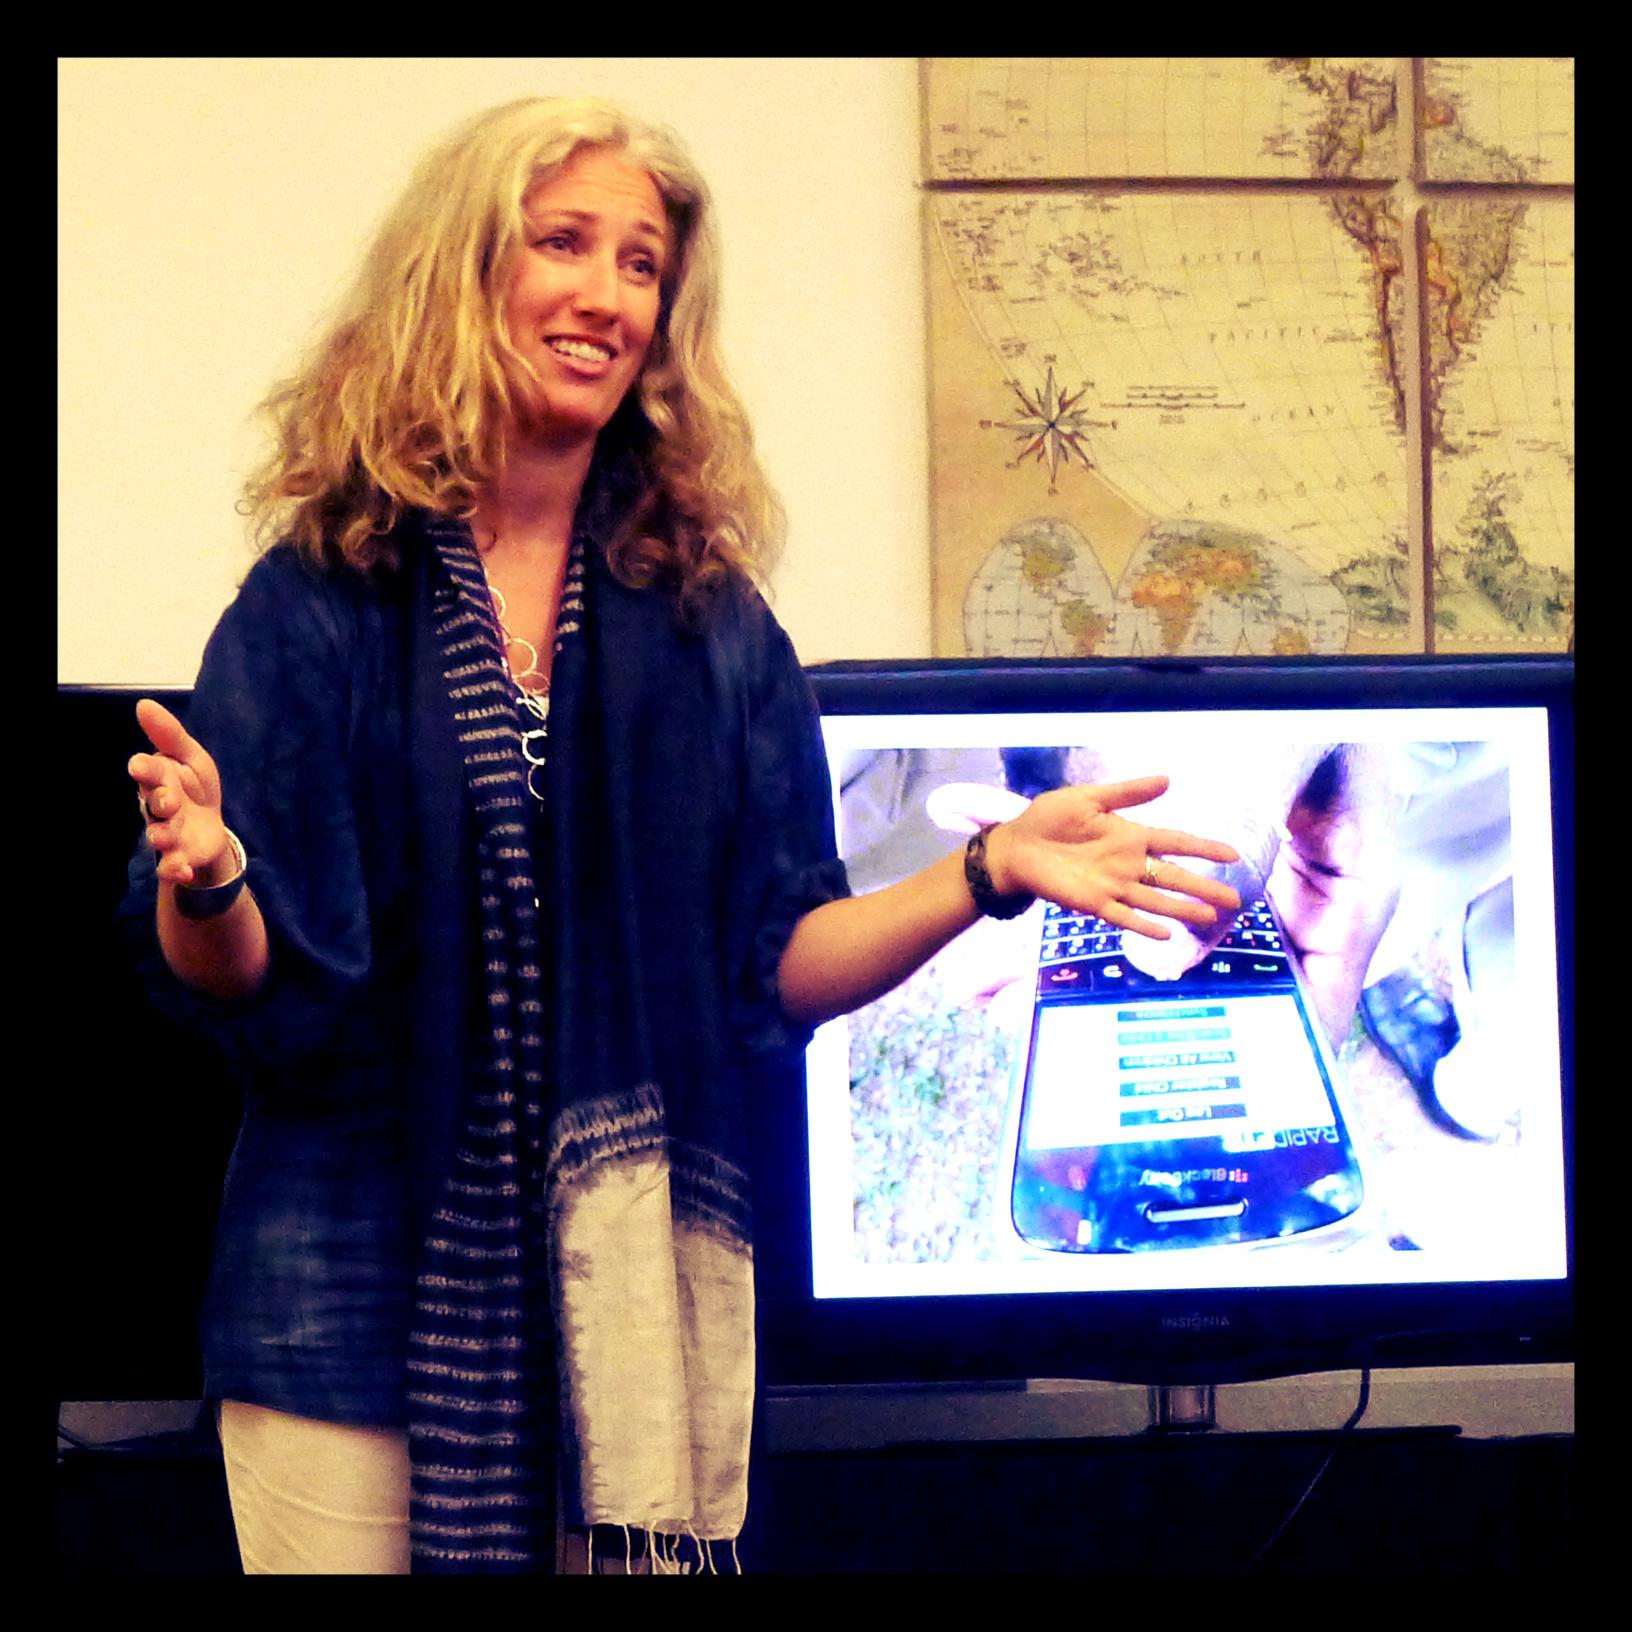 Pernille Ironside, from UNICEF Palestine, presented RapidFTR to Singularity University students. © UNICEF 2014/Holmes